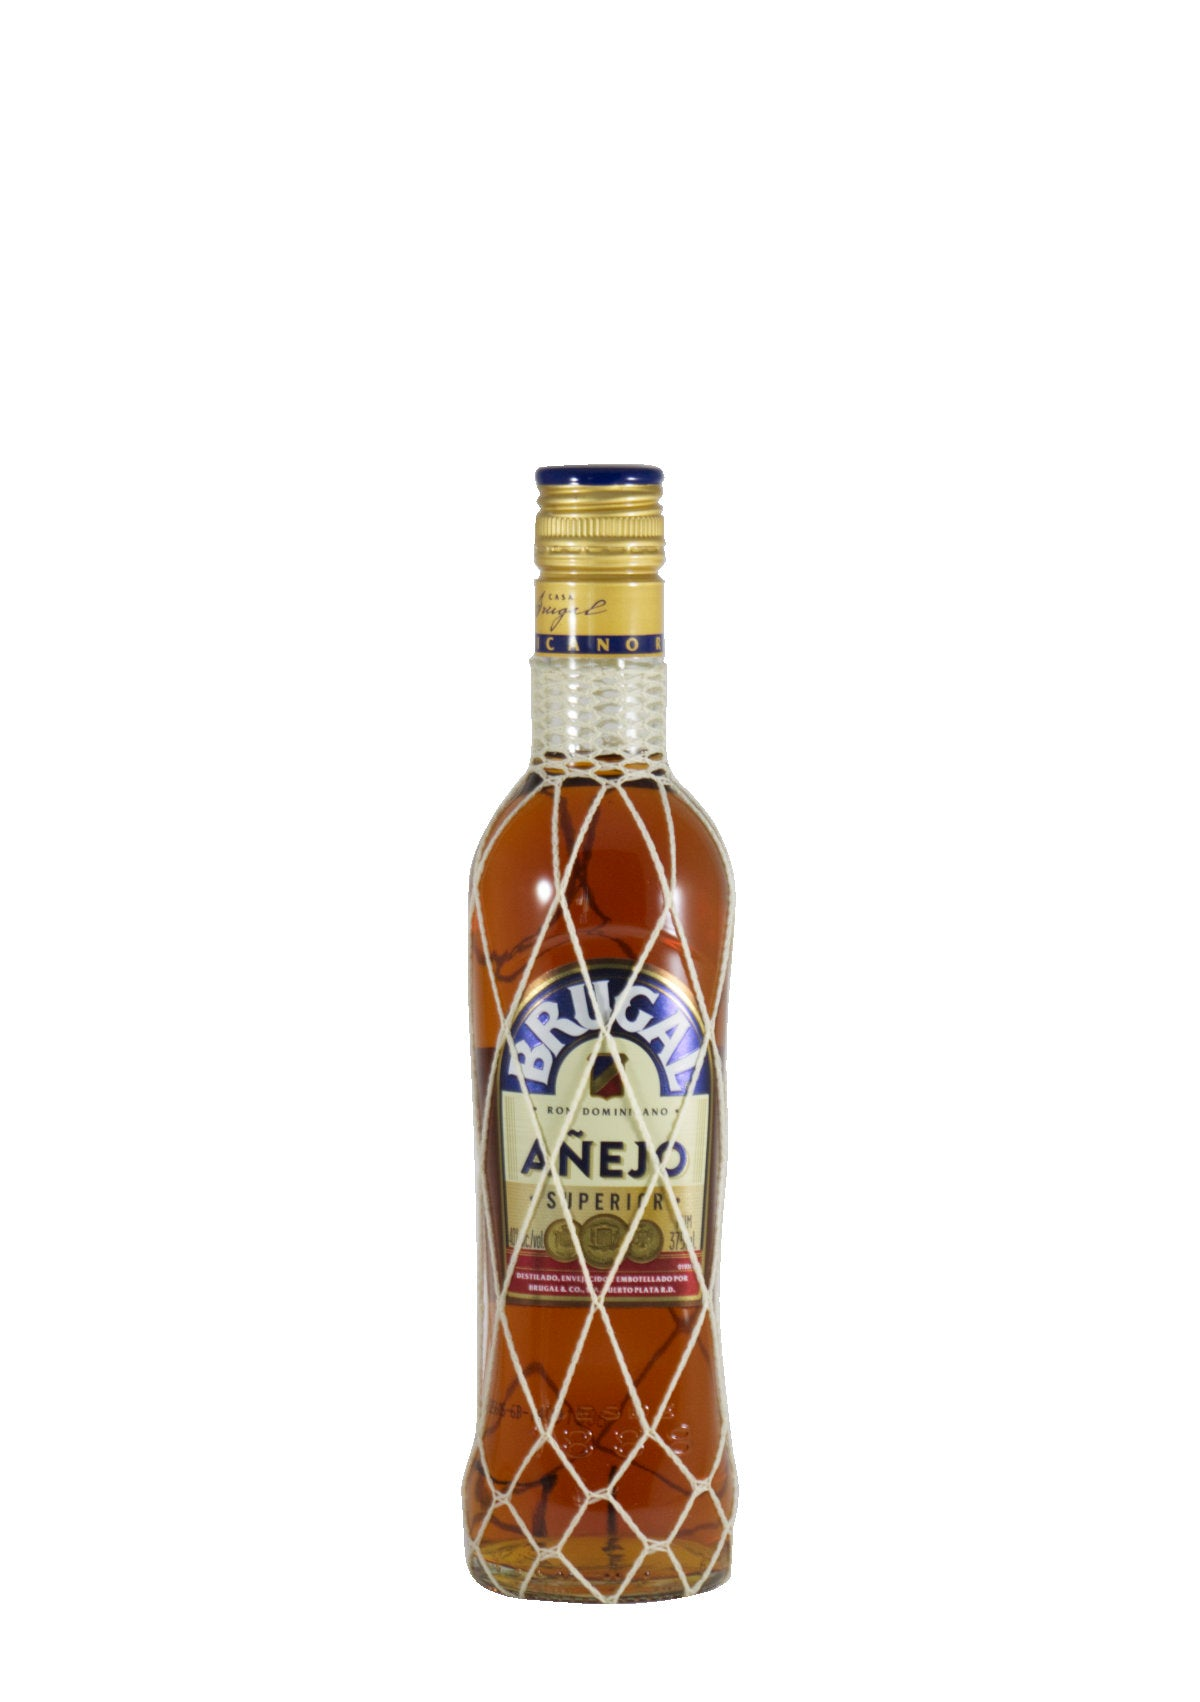 Brugal Anejo Superior Rum 375ml (Dominican Republic)